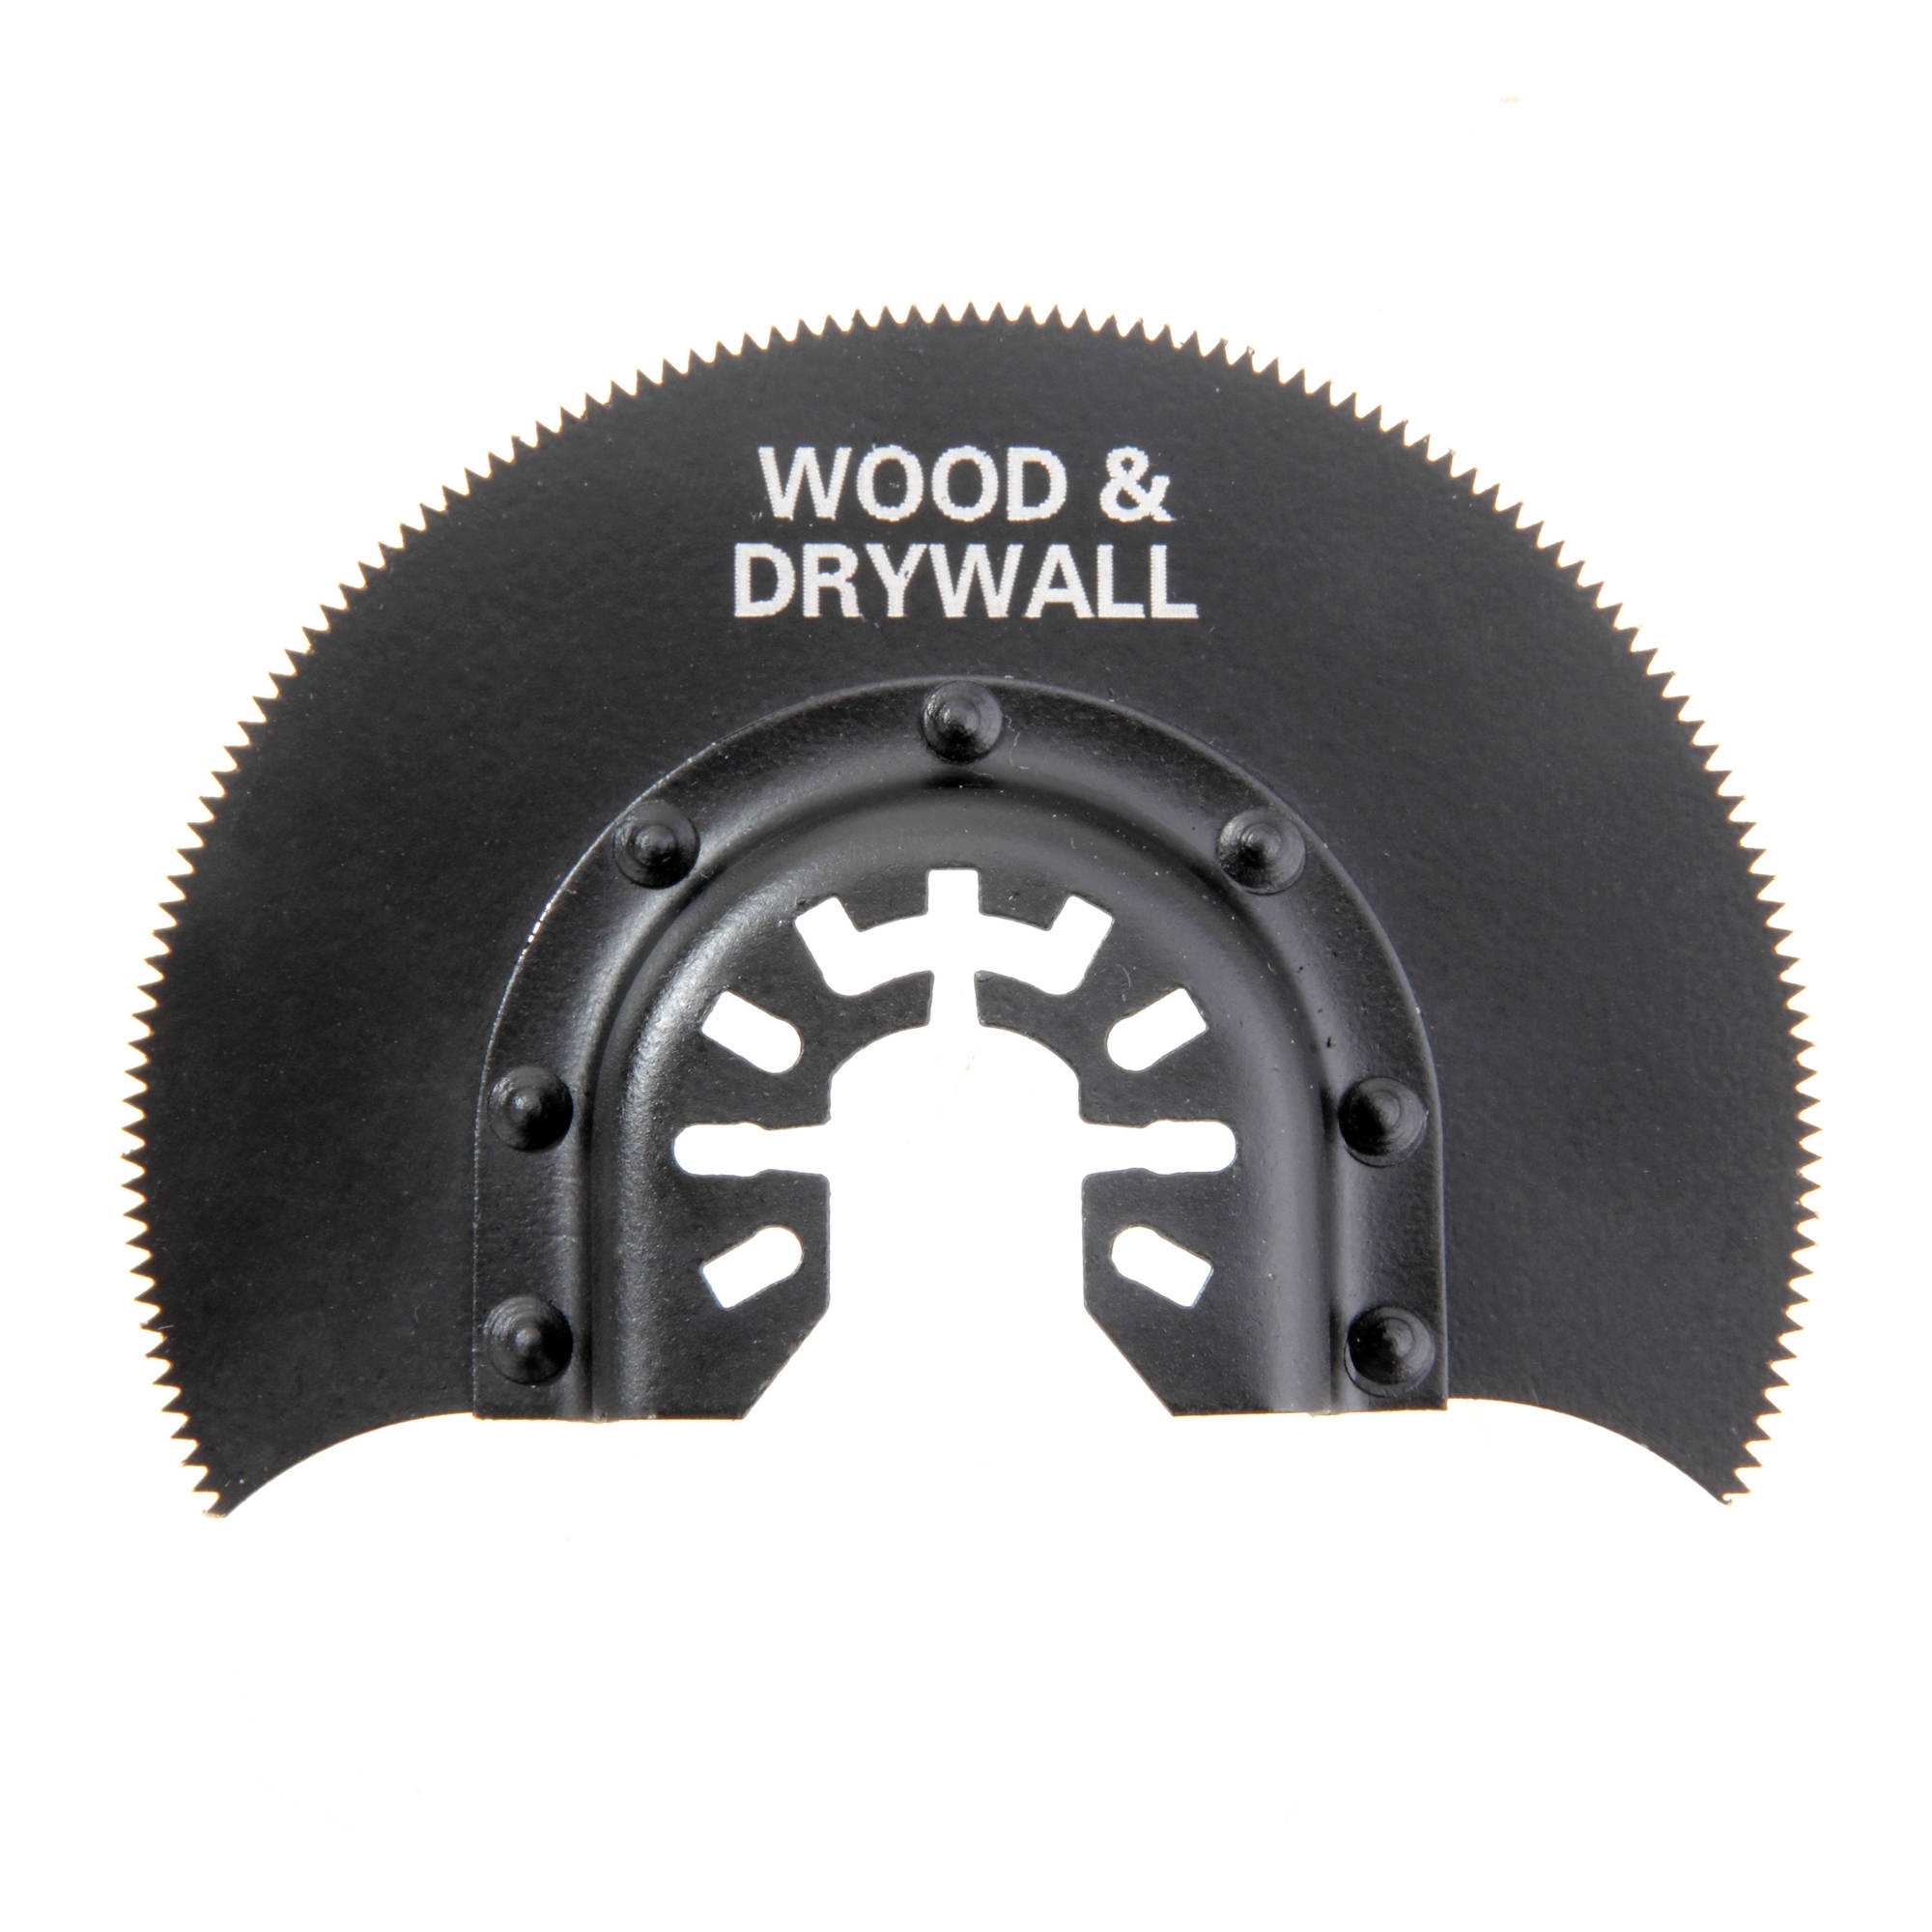 Hyper Tough JB98001J 3-1/8 Inch Semi-Circular Wood Saw Blade